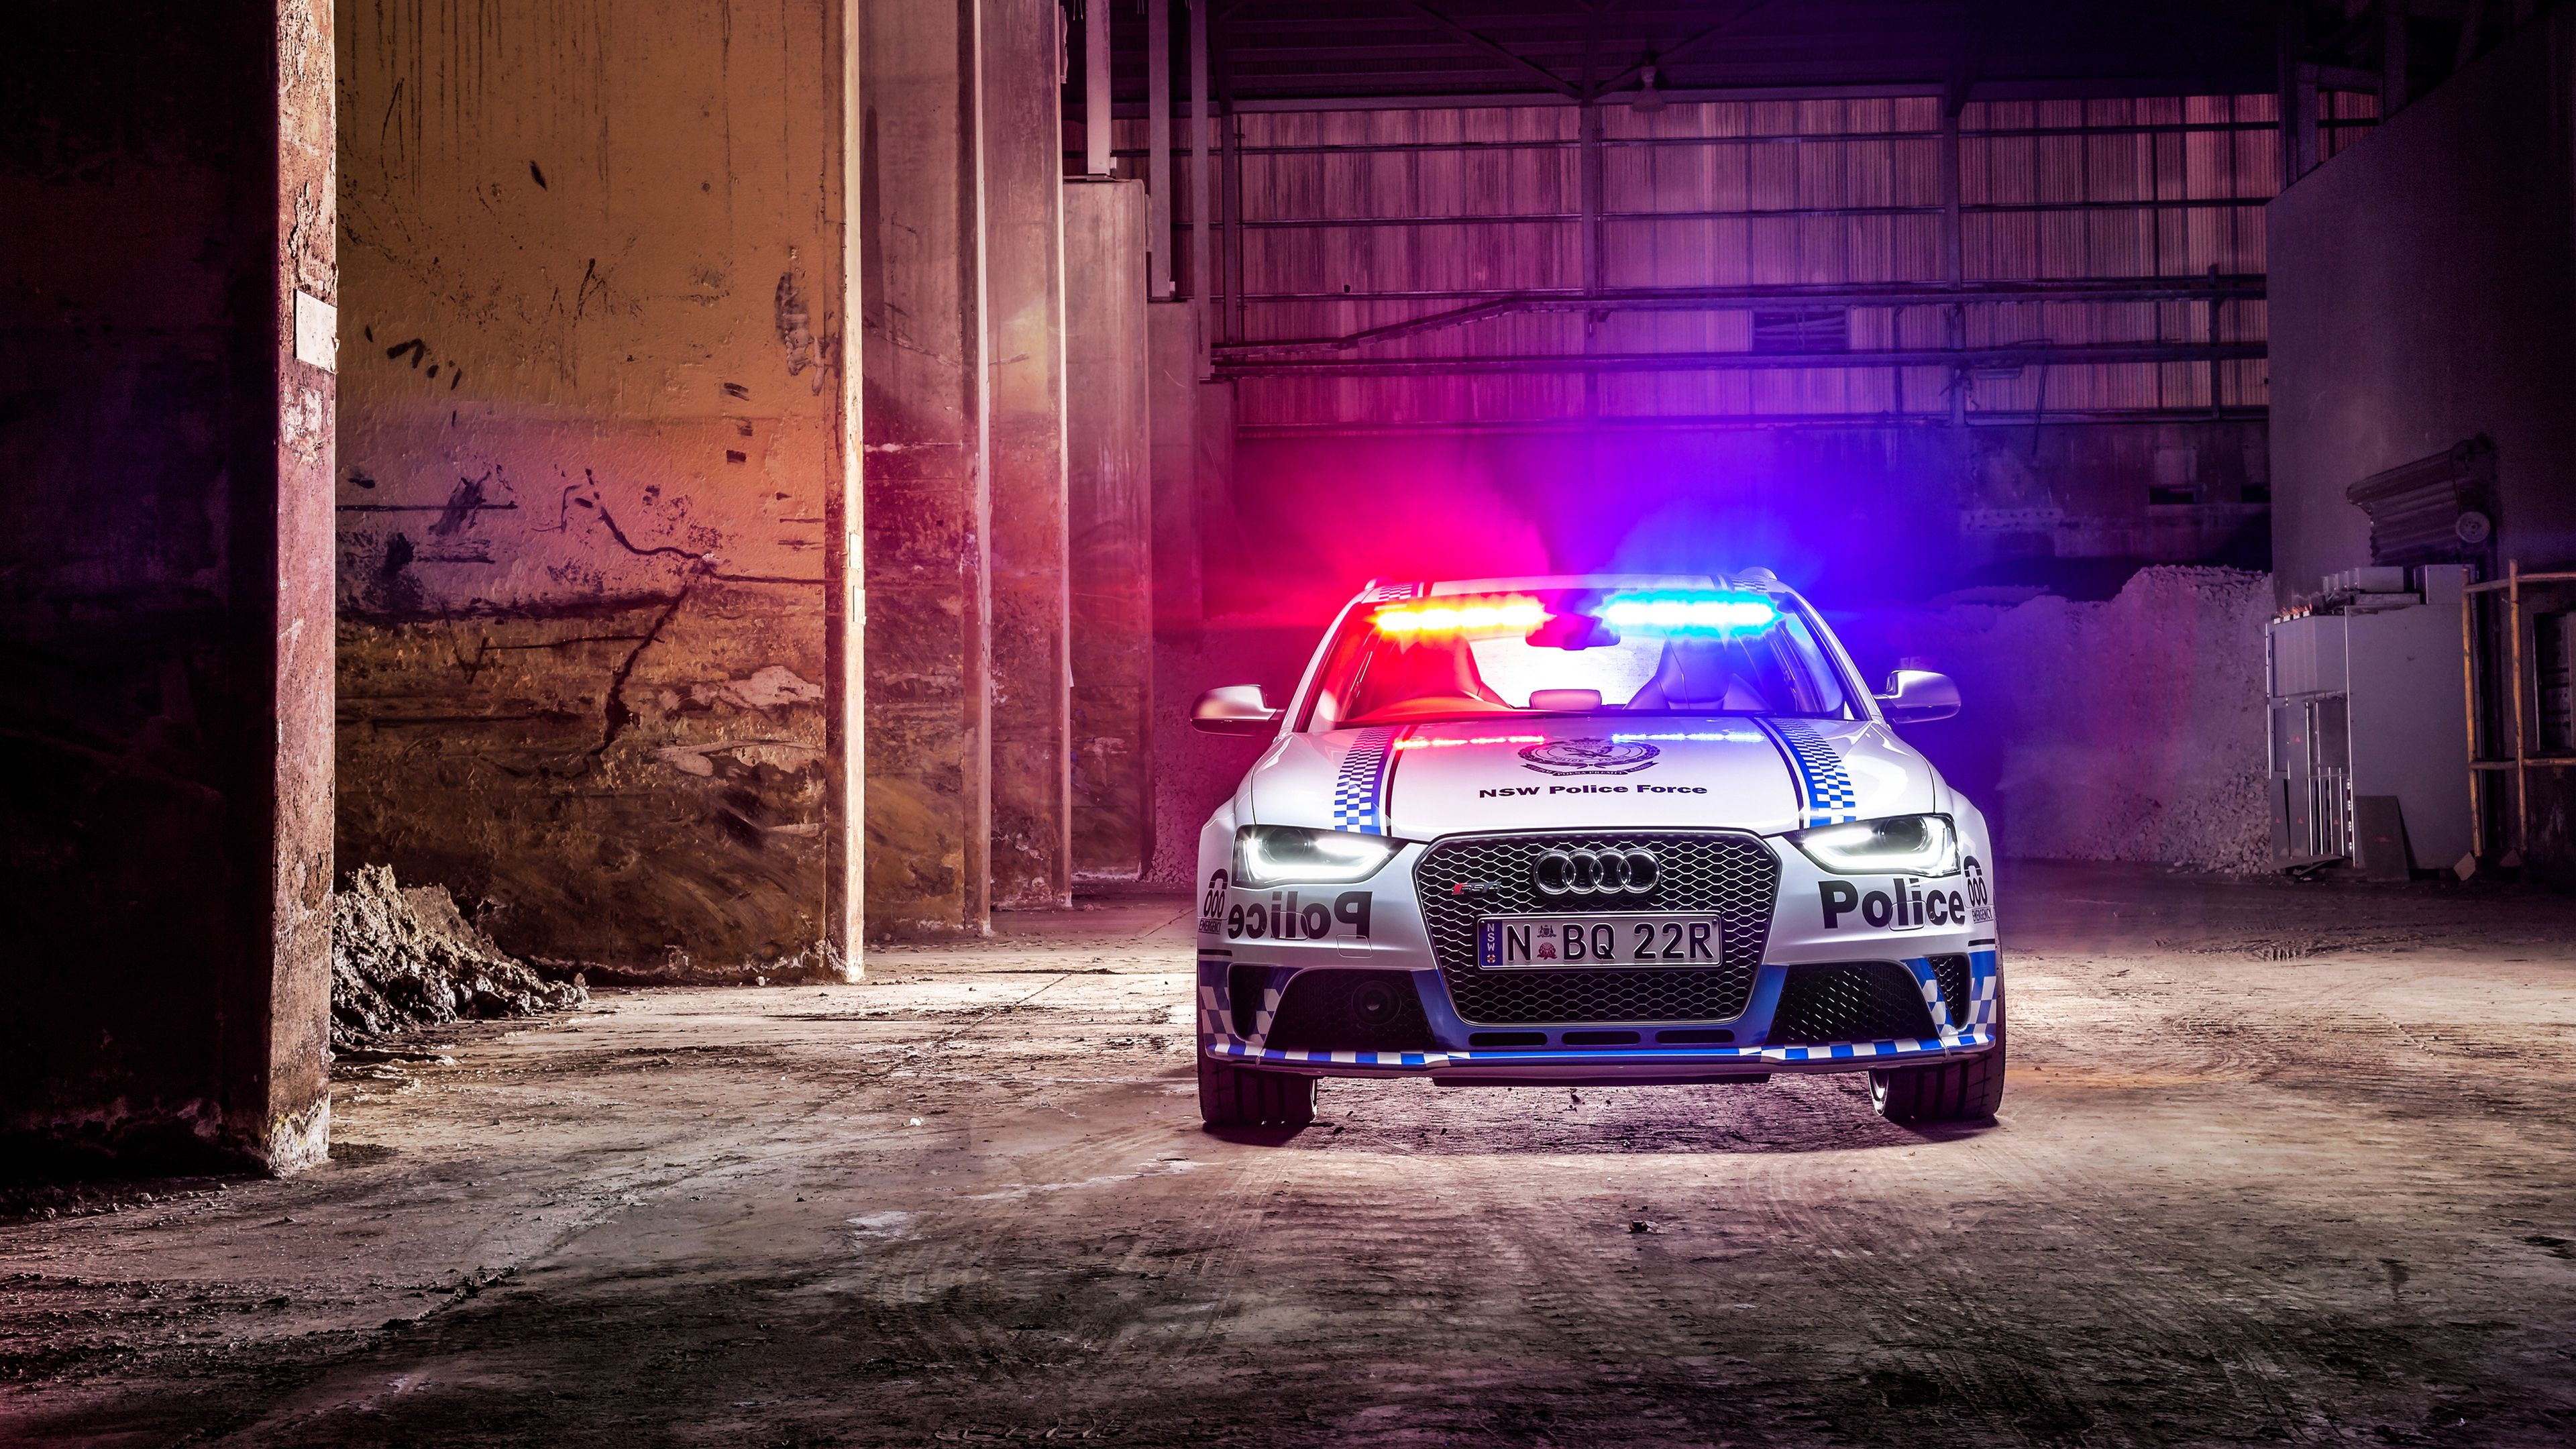 Police Wallpapers Wallpaper Cave